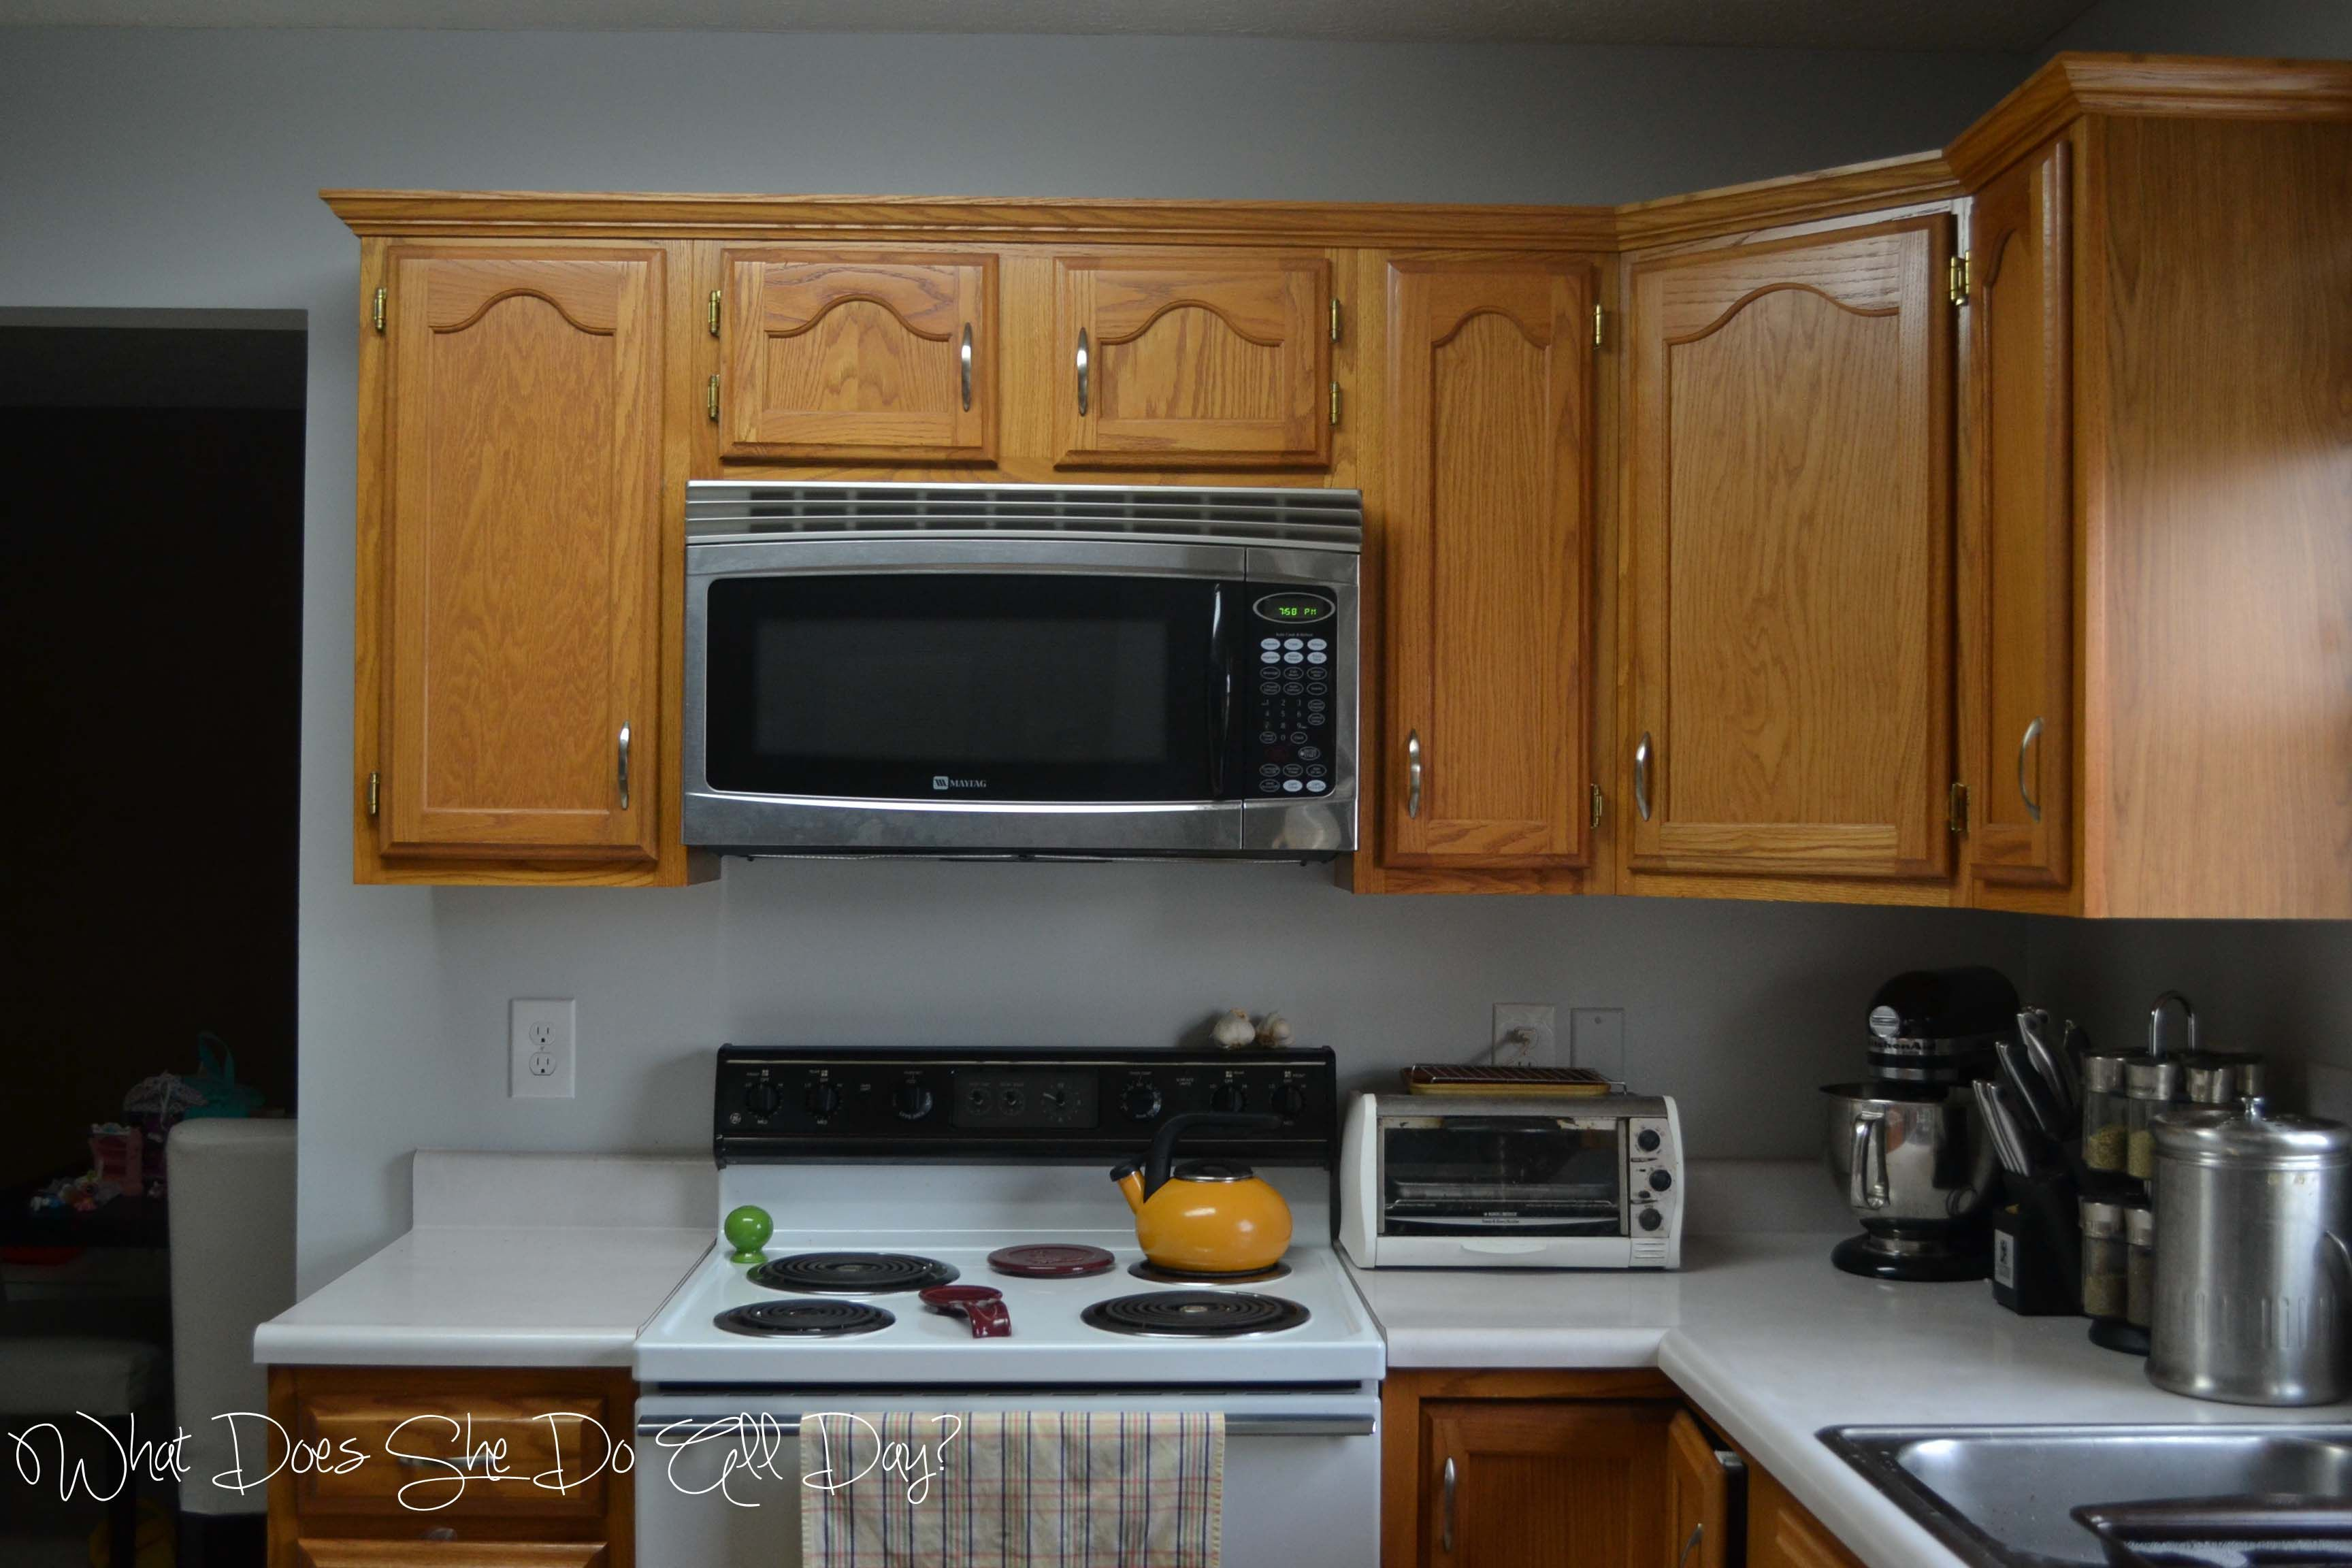 Charmant Image Result For What Color To Paint A Kitchen With Tan Wood Cabinets